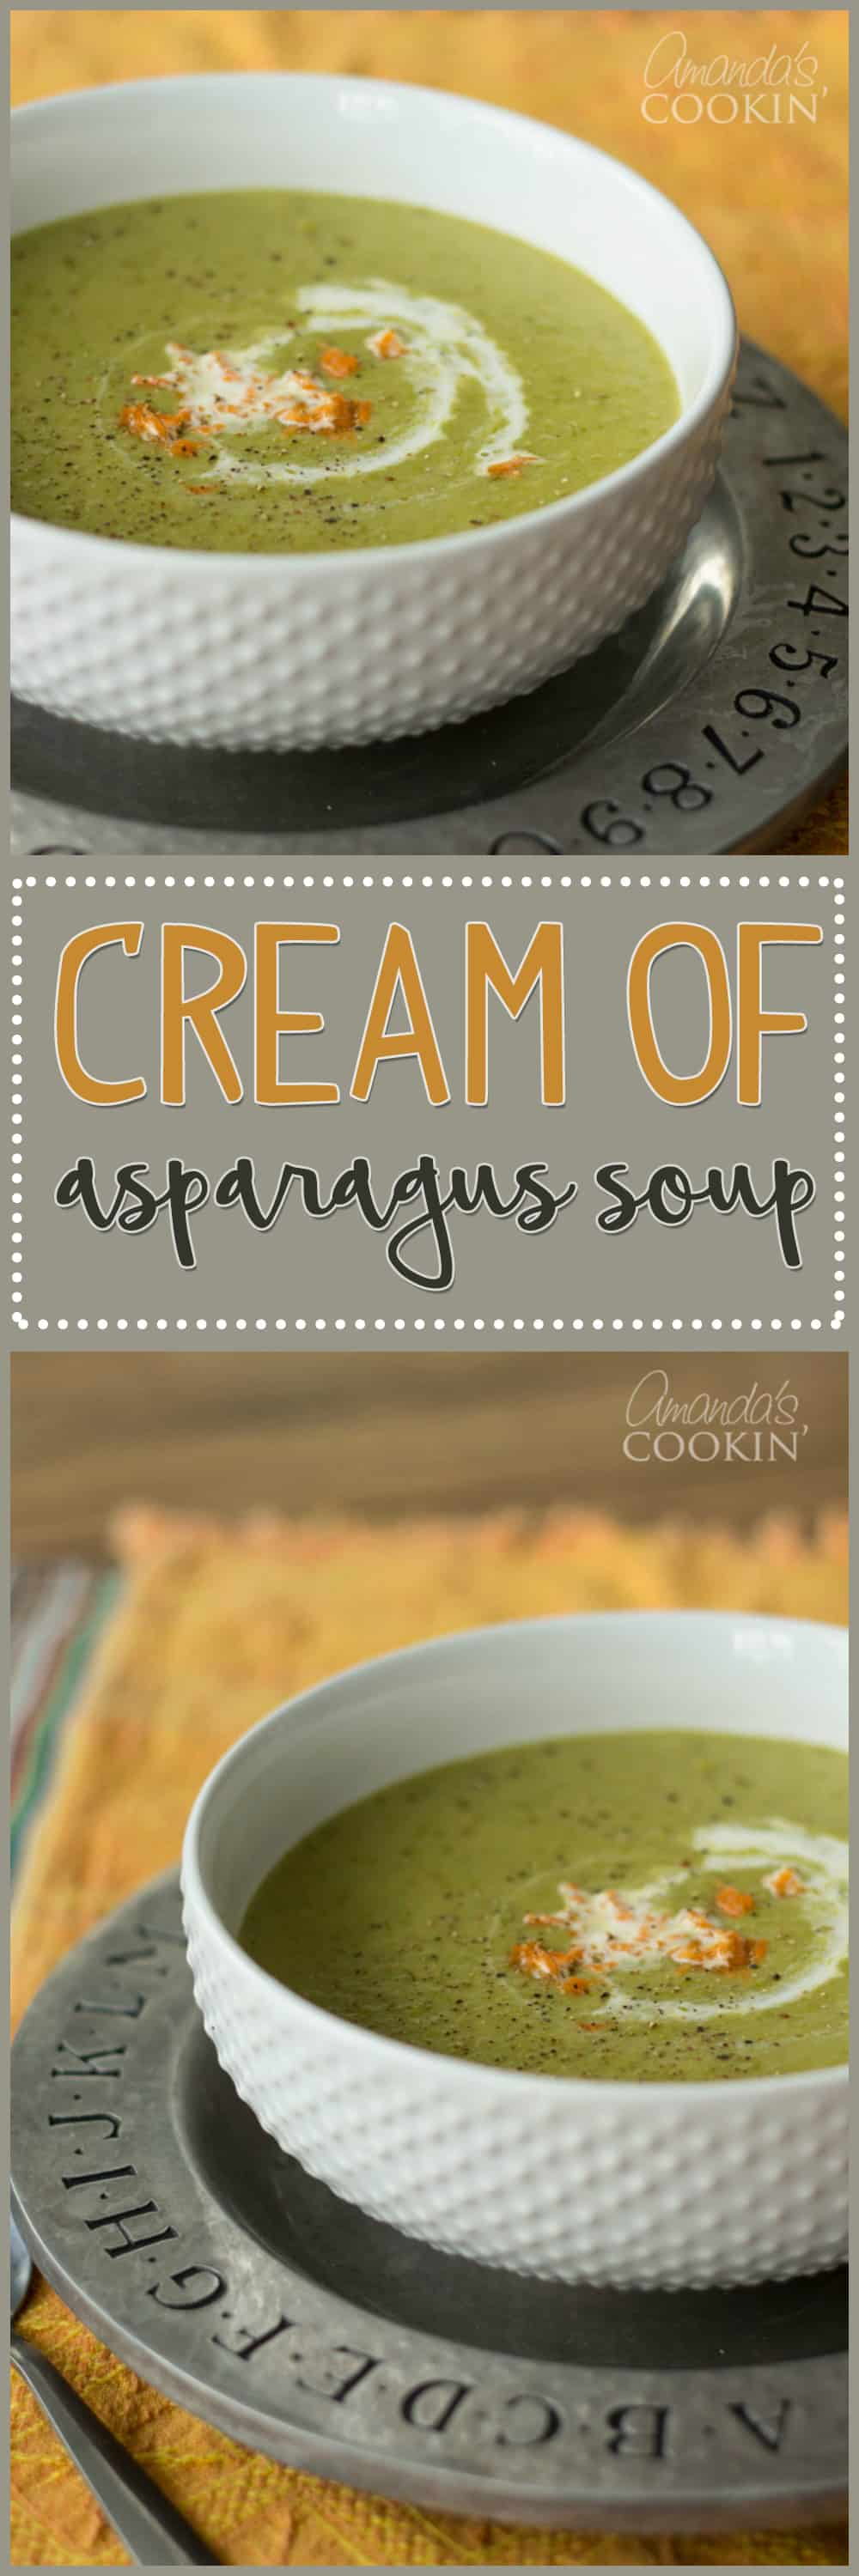 A photo of cream of asparagus soup.